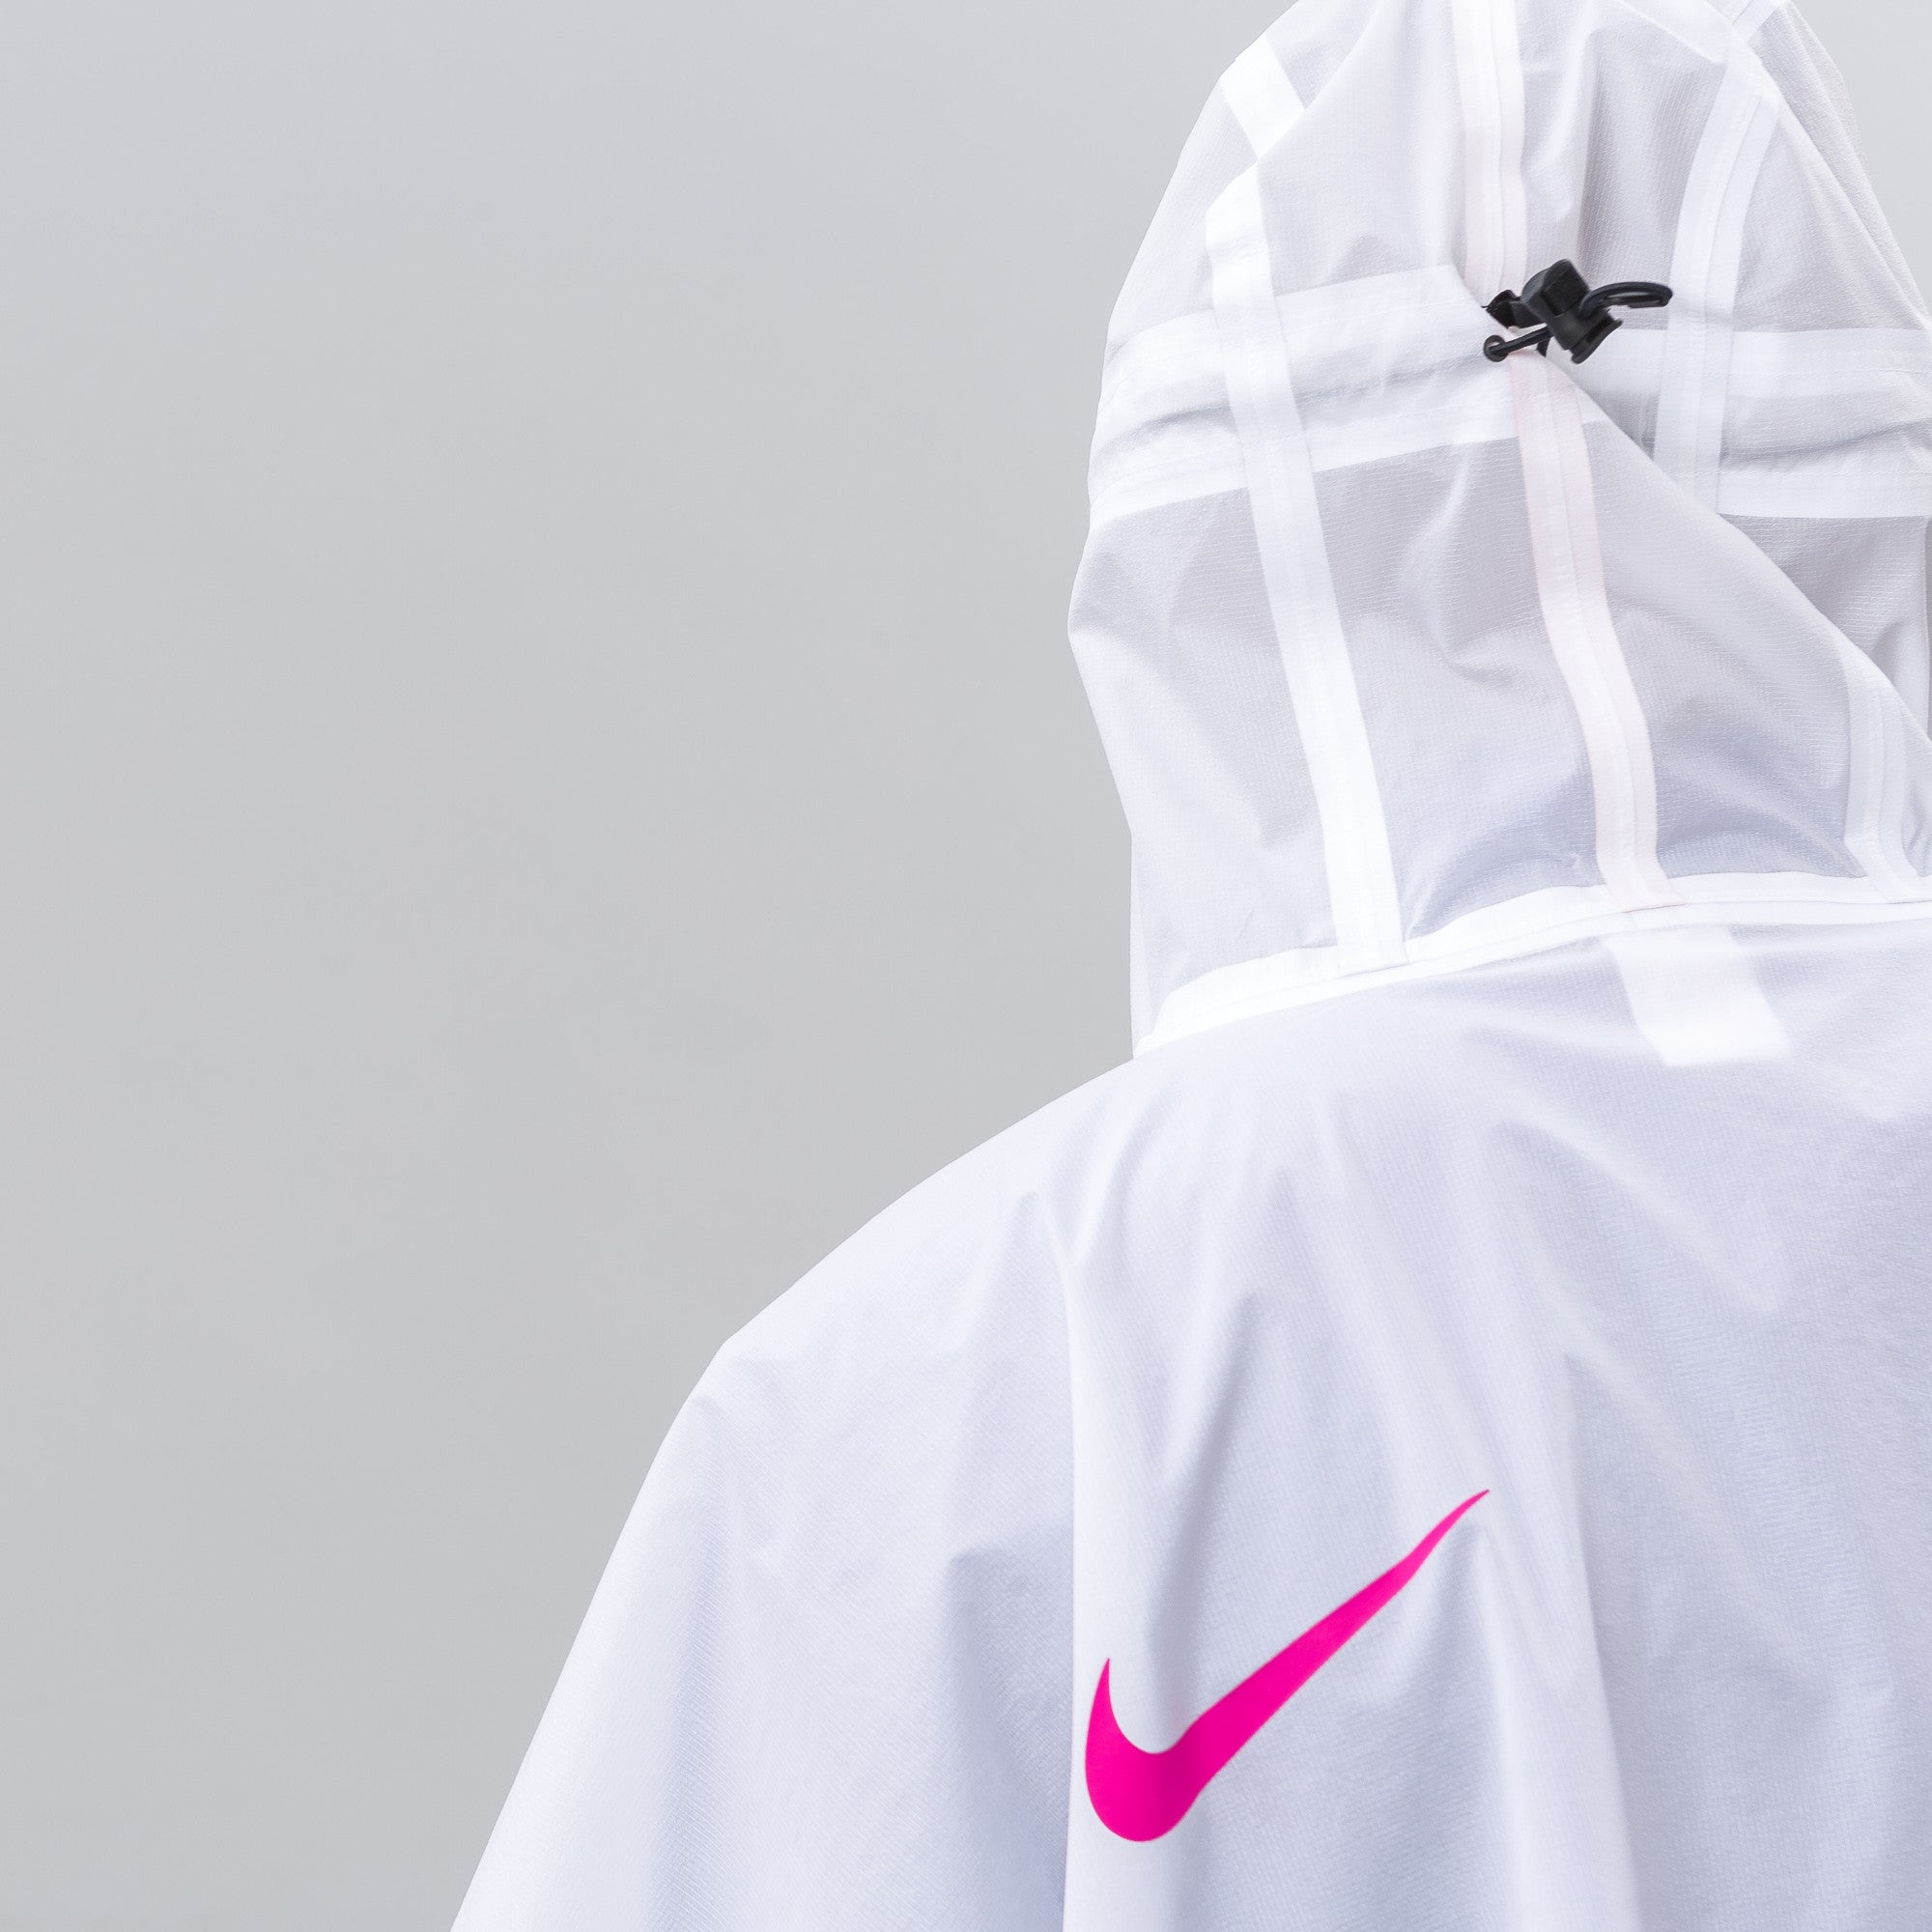 NikeLab 3L Packable ACG Poncho in White